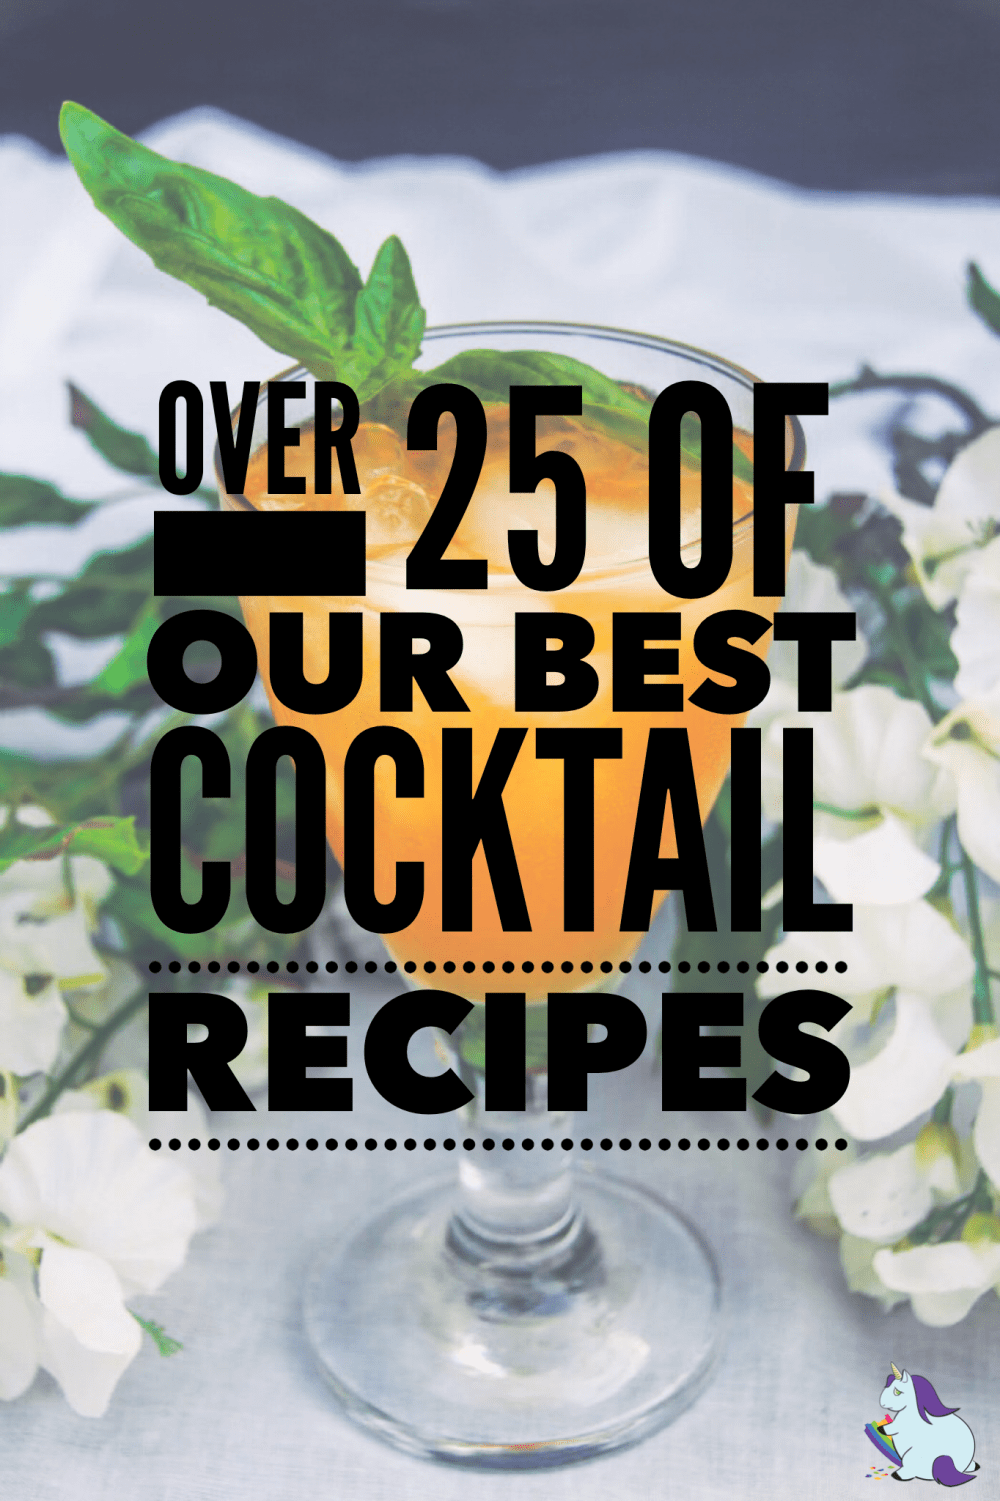 Top Cocktail Recipes to Impress your Friends